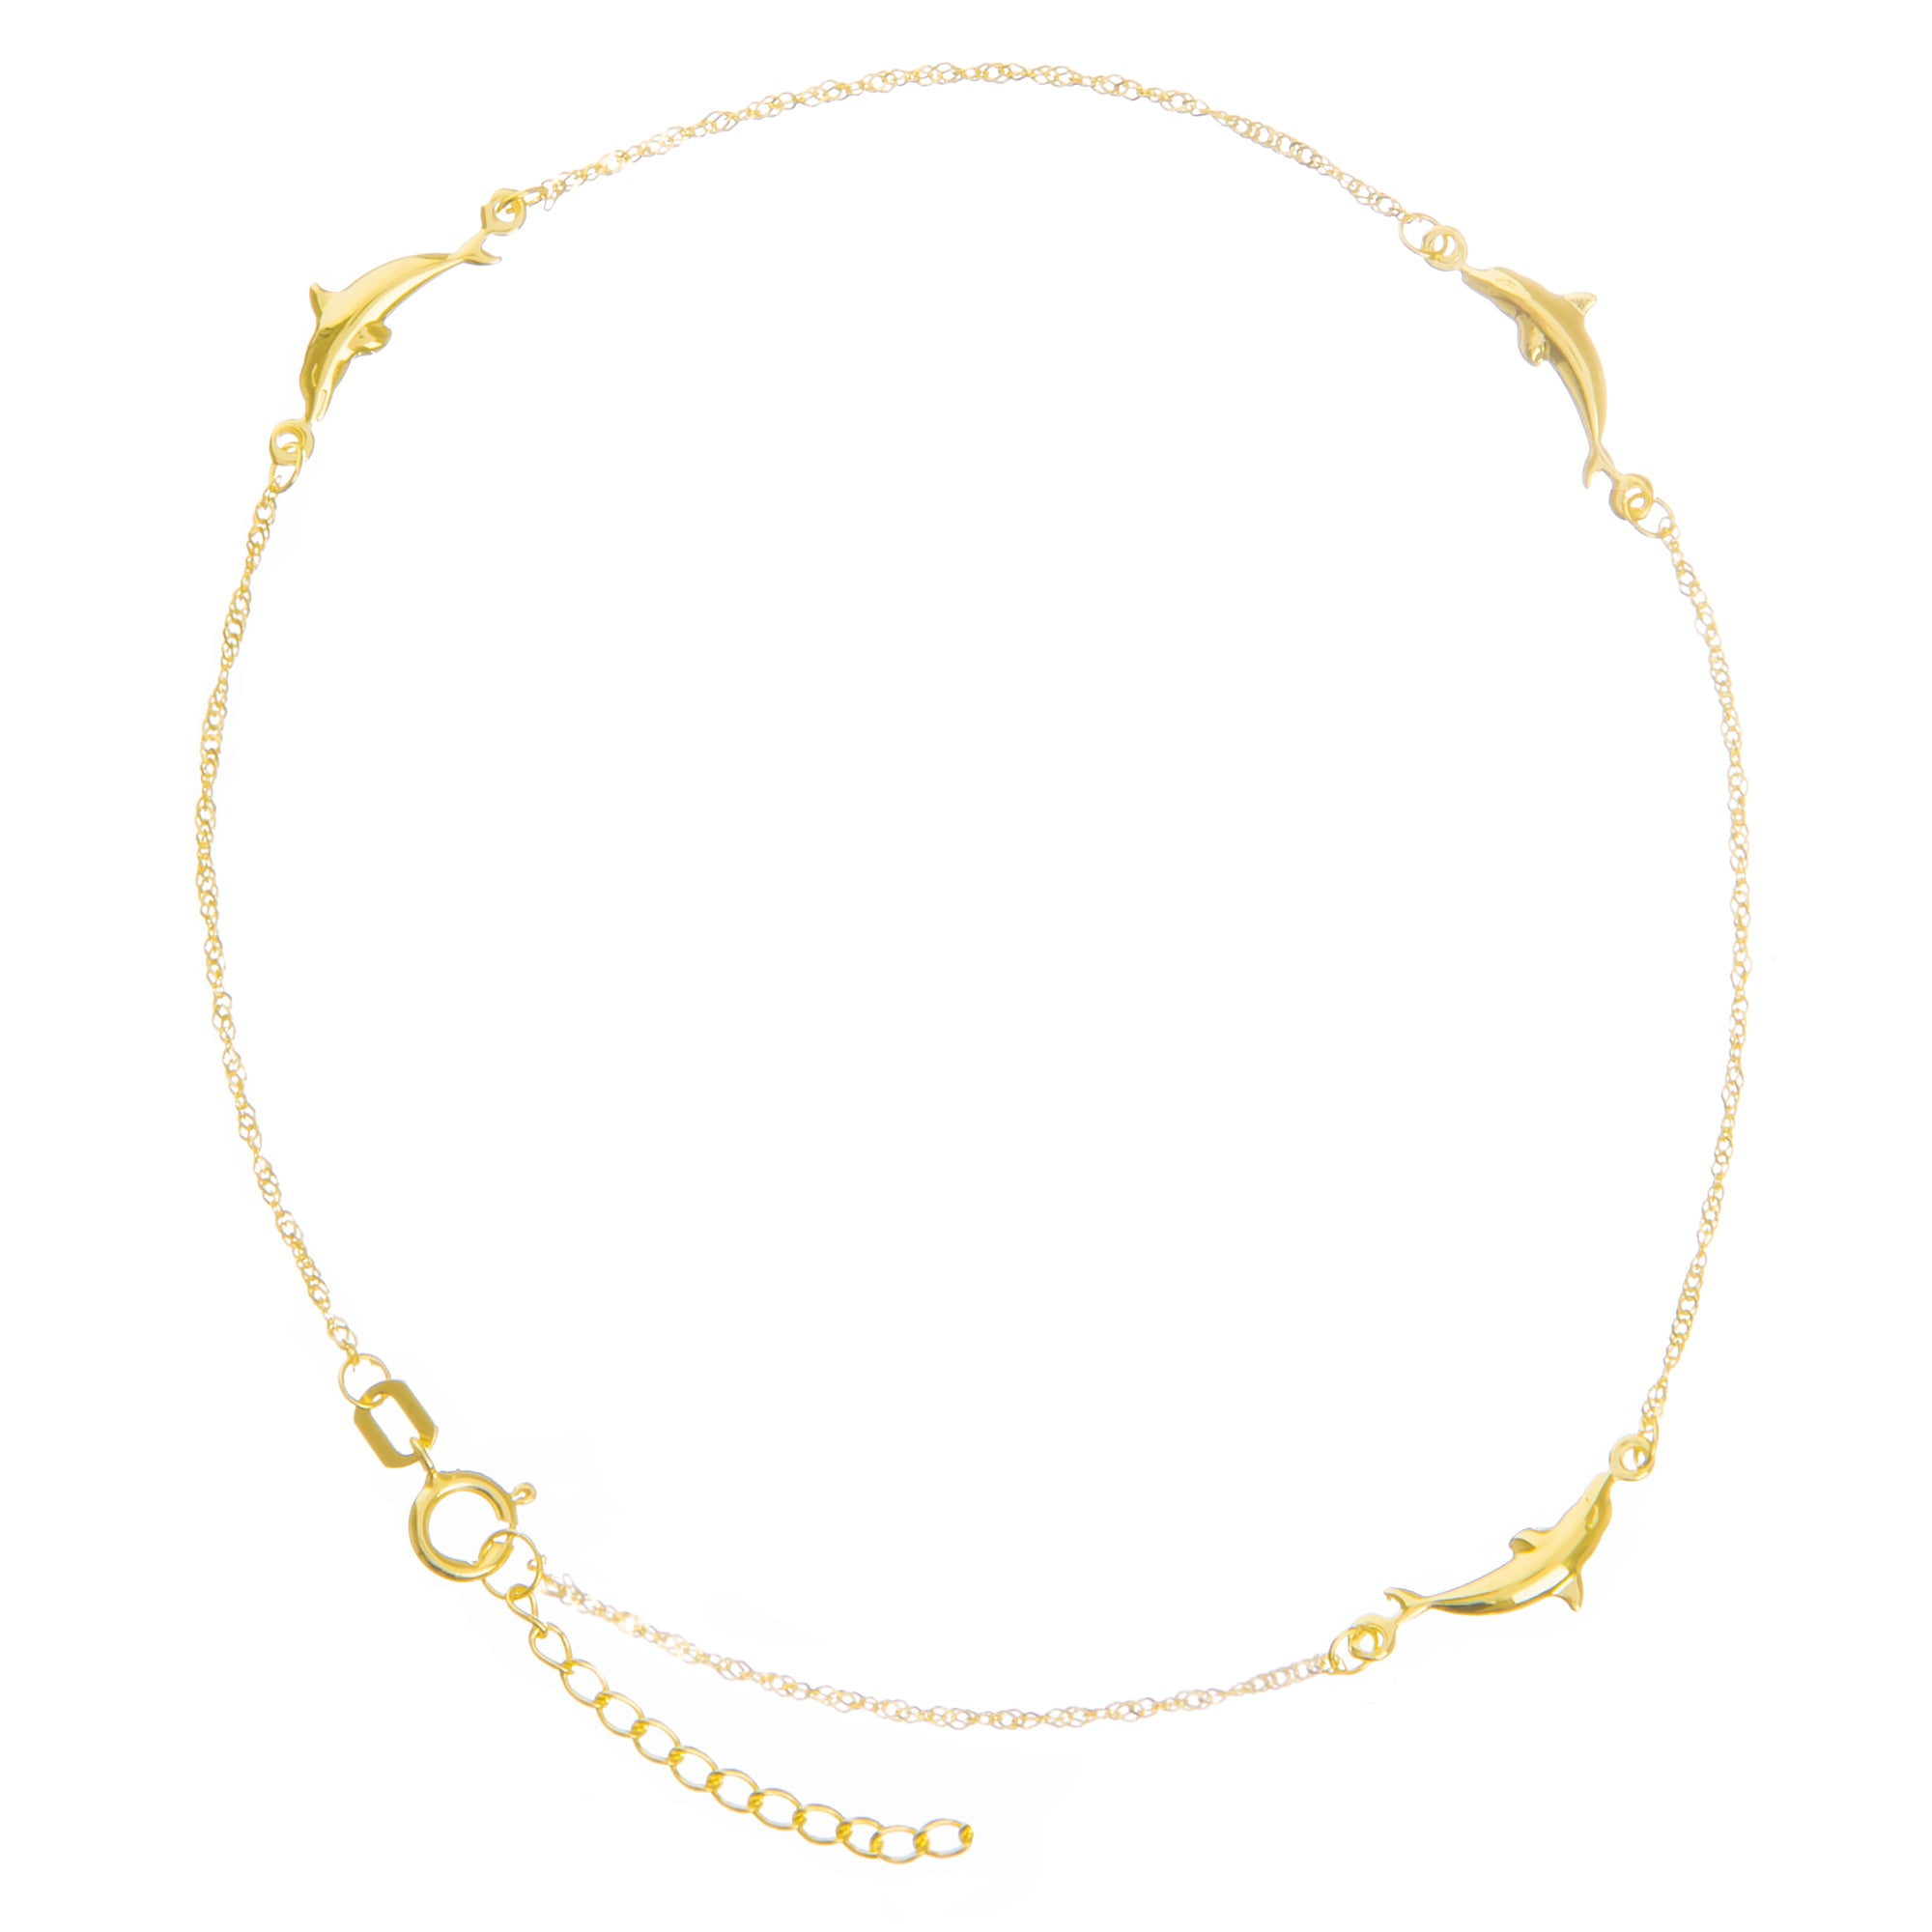 14K Yellow Gold Adjustable Dolphins Anklet